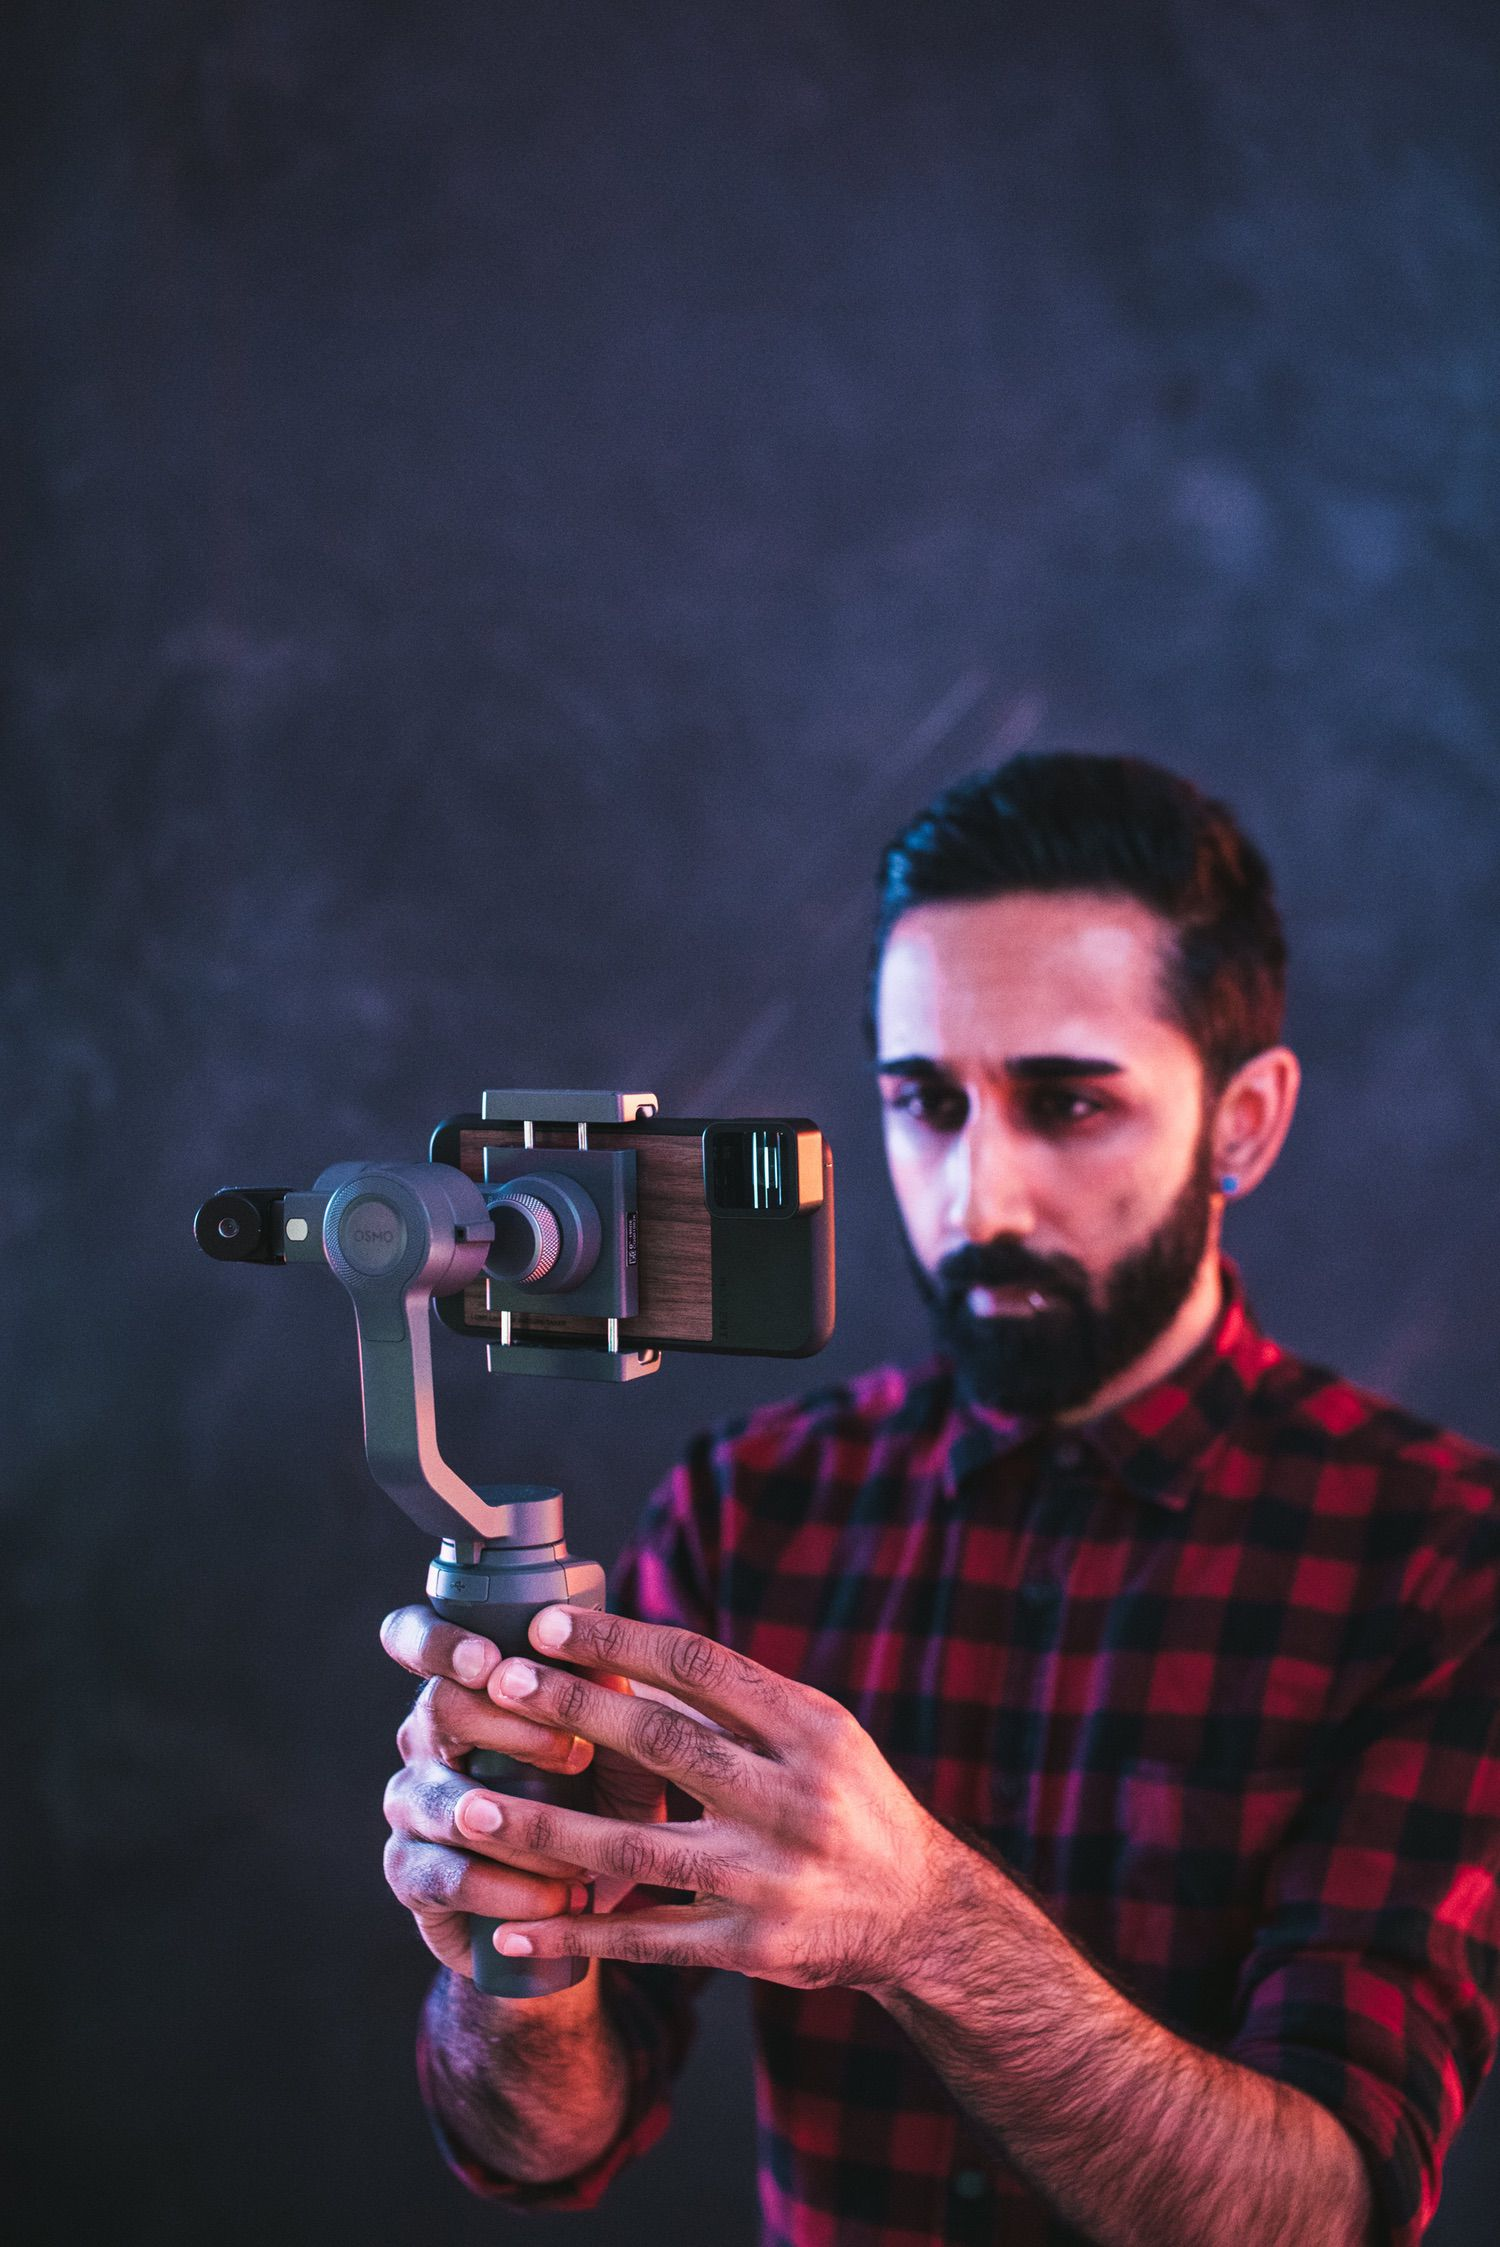 Moment Anamorphic Lens Universal Counterweight on DJI Osmo Mobile 2